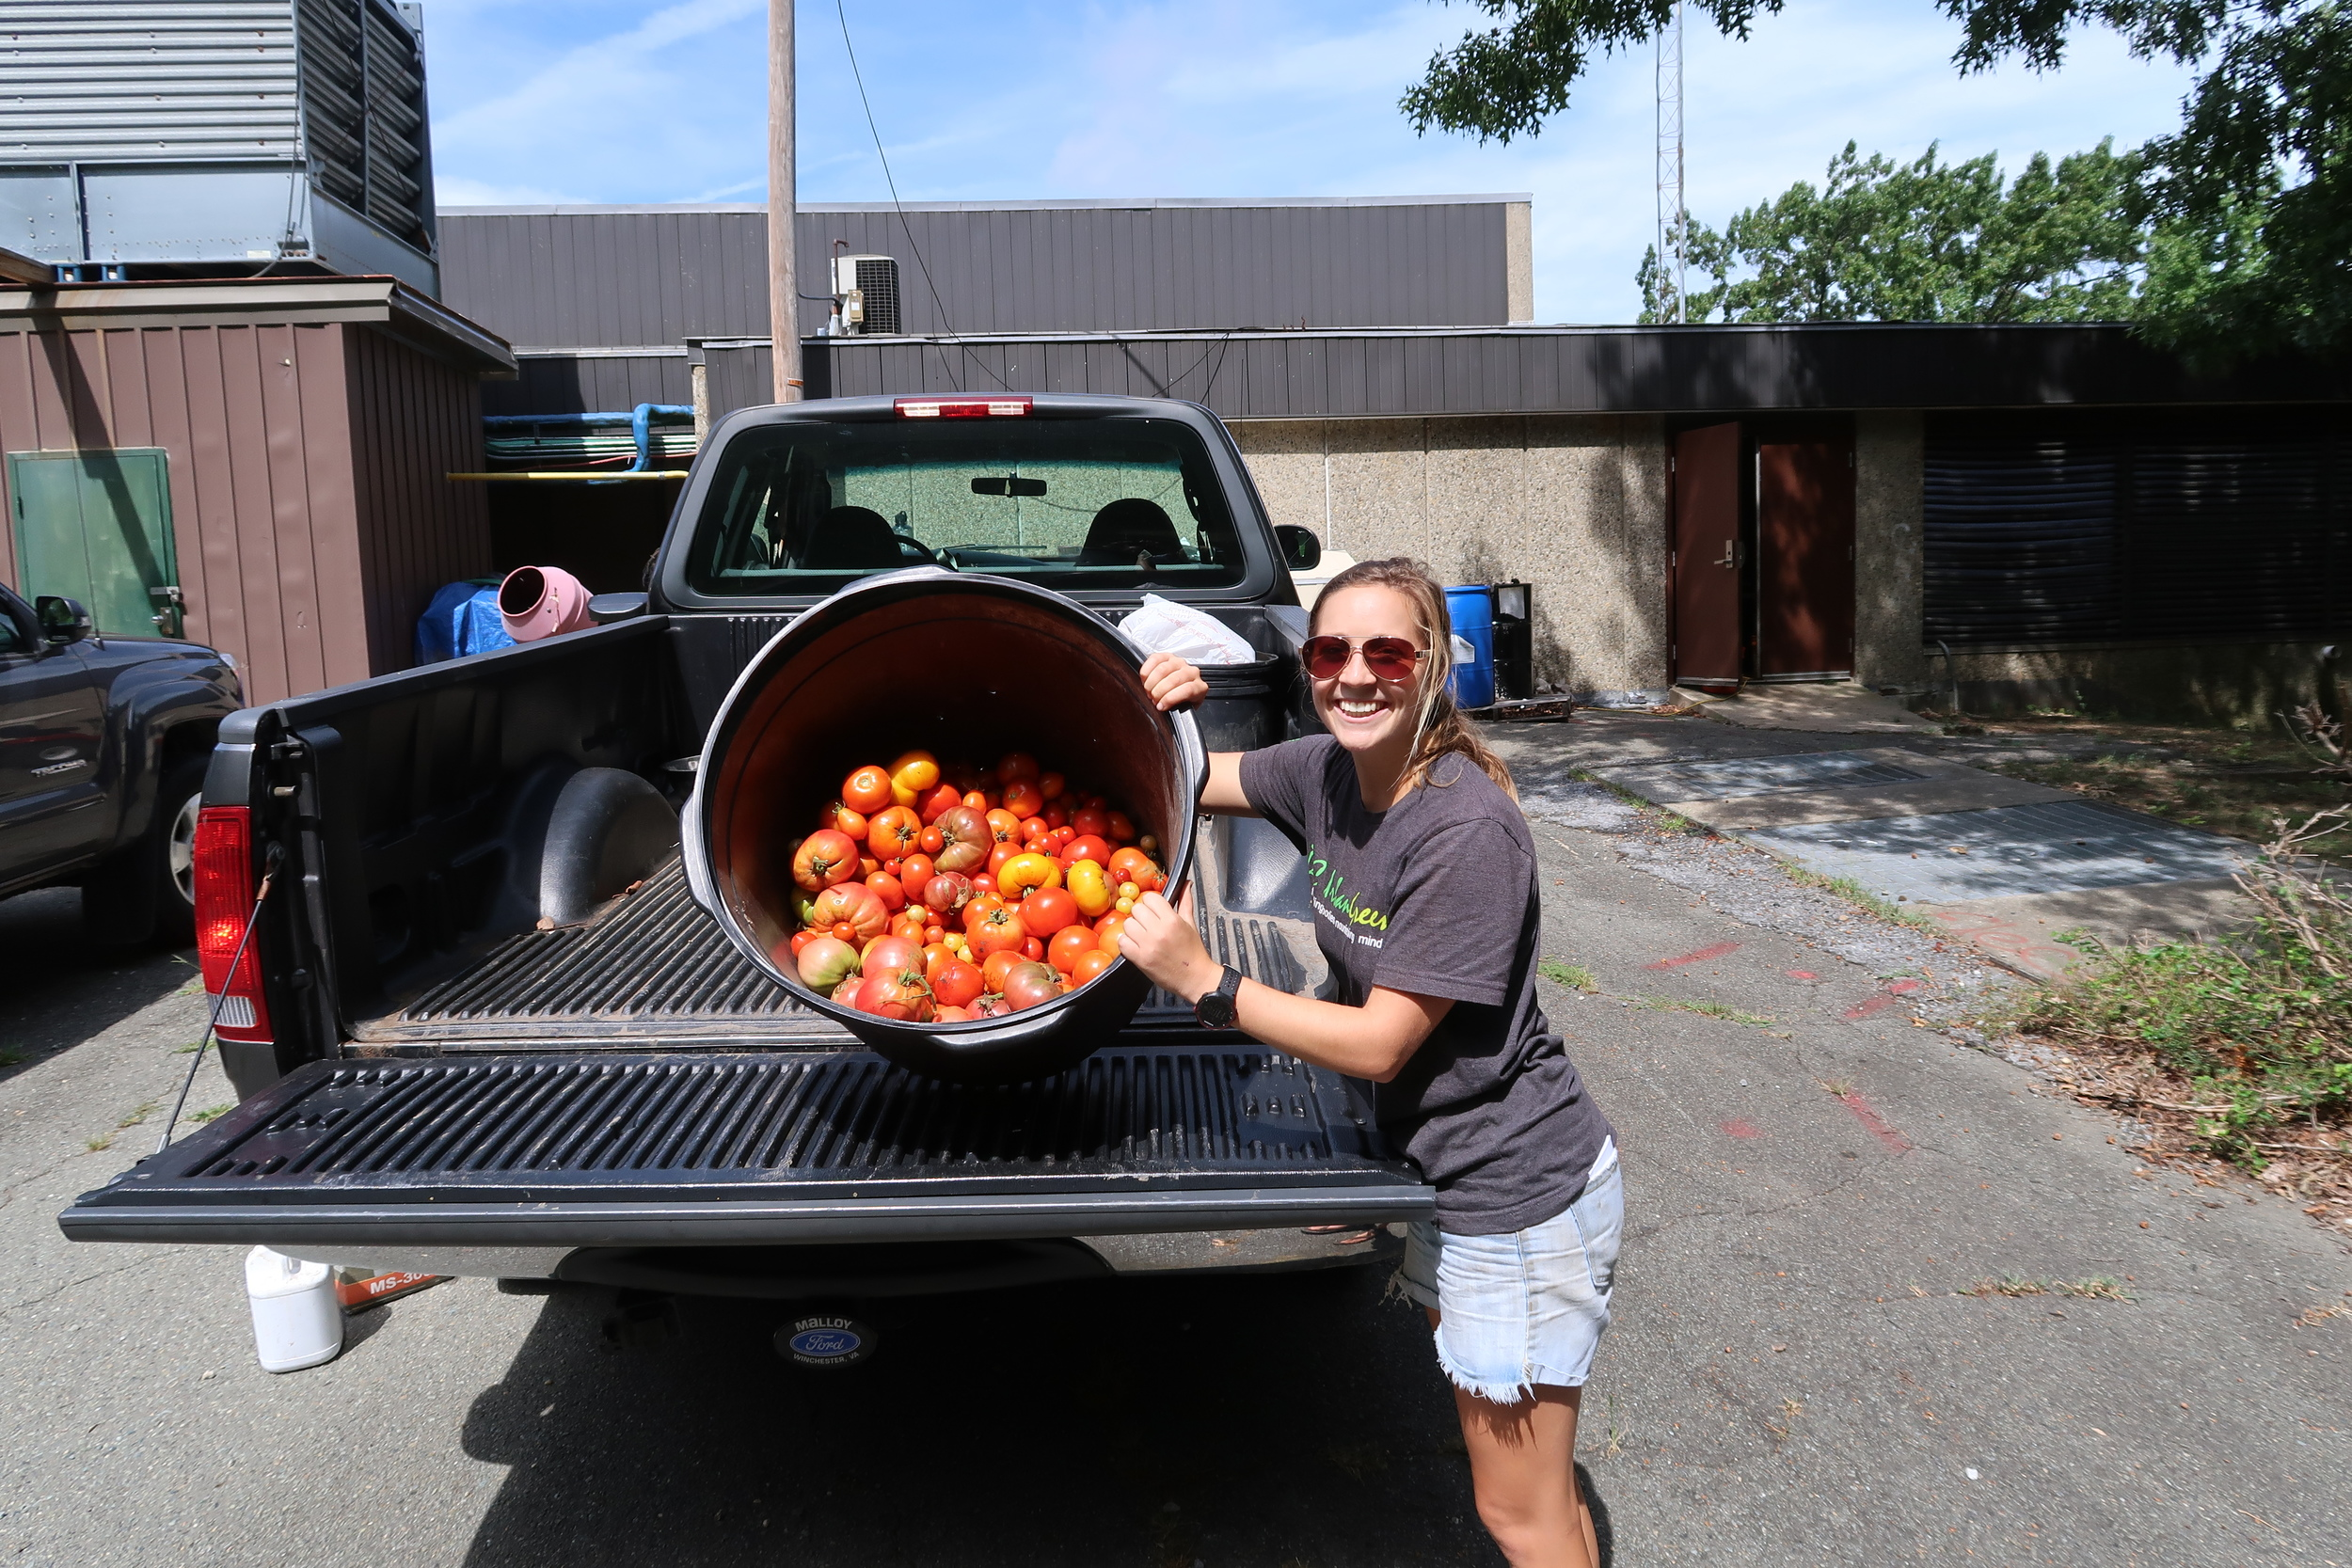 50# of tomatoes!